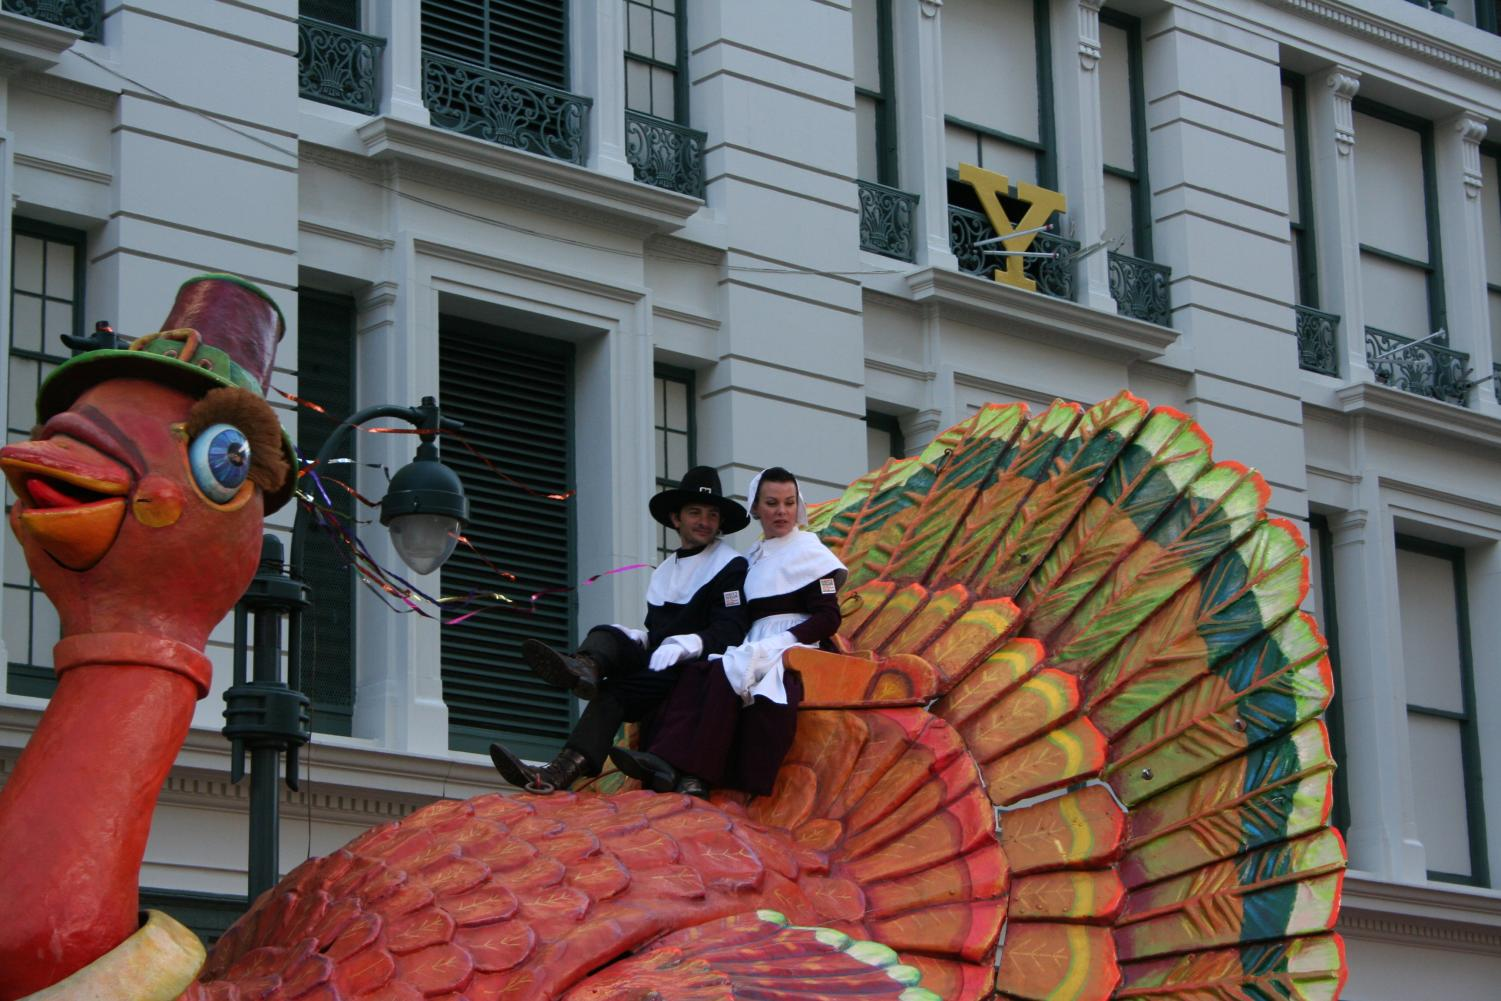 Besides sitting on giant turkeys, here are a host of ways to spend your Ramsgiving. (COURTESY OF SOPHIA OLIVERI-MEYER)